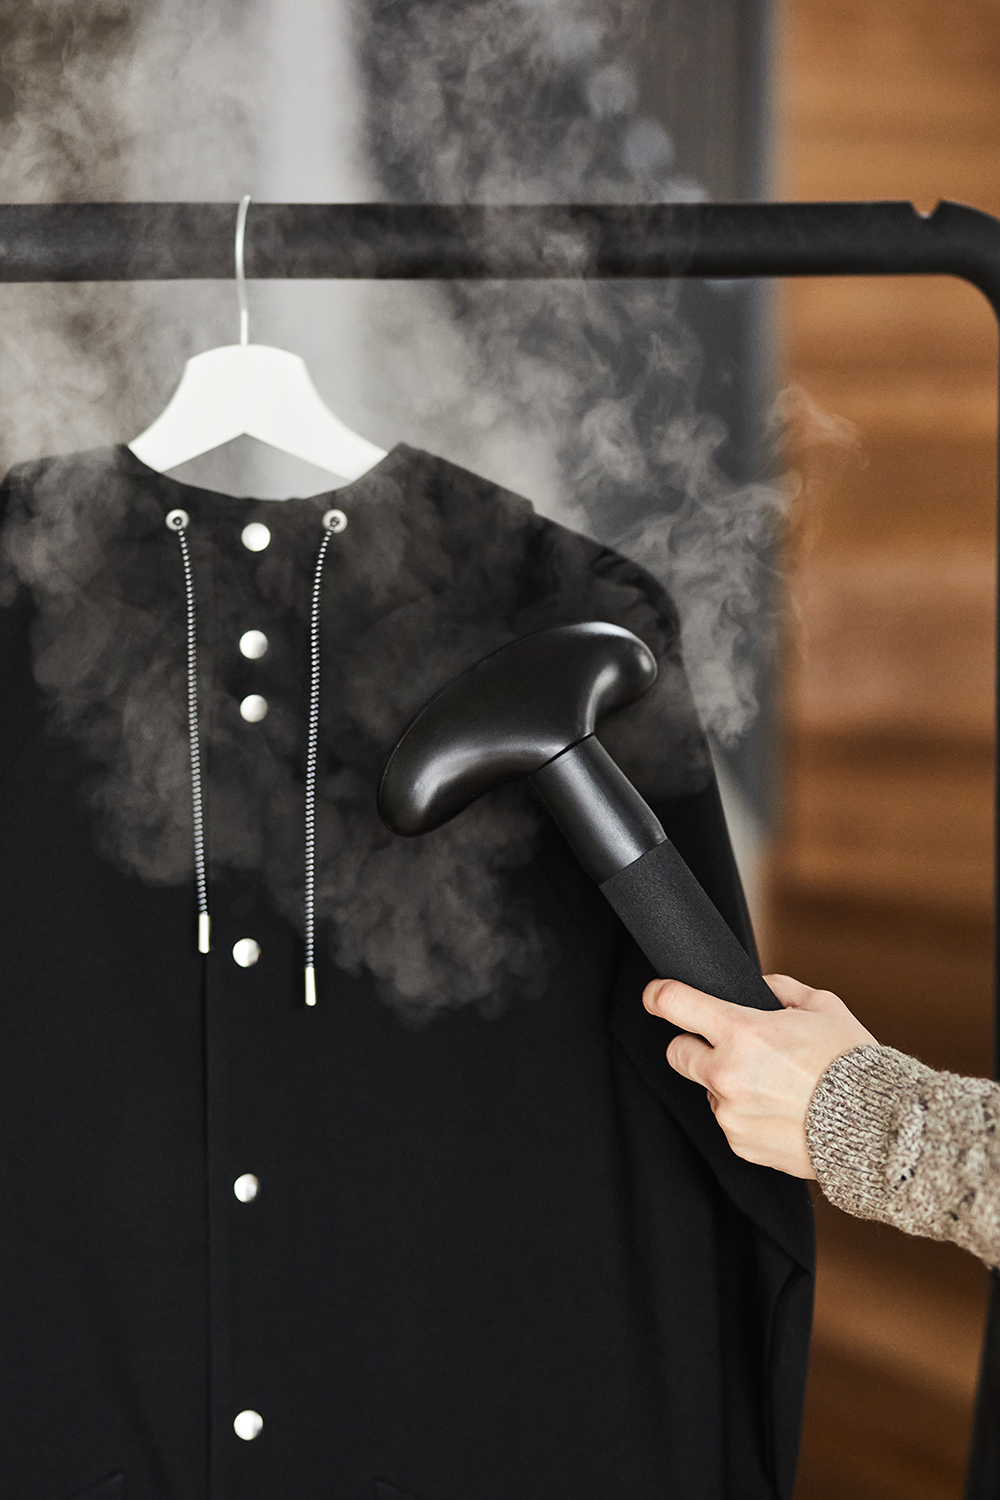 steam your raincoat instead of ironing